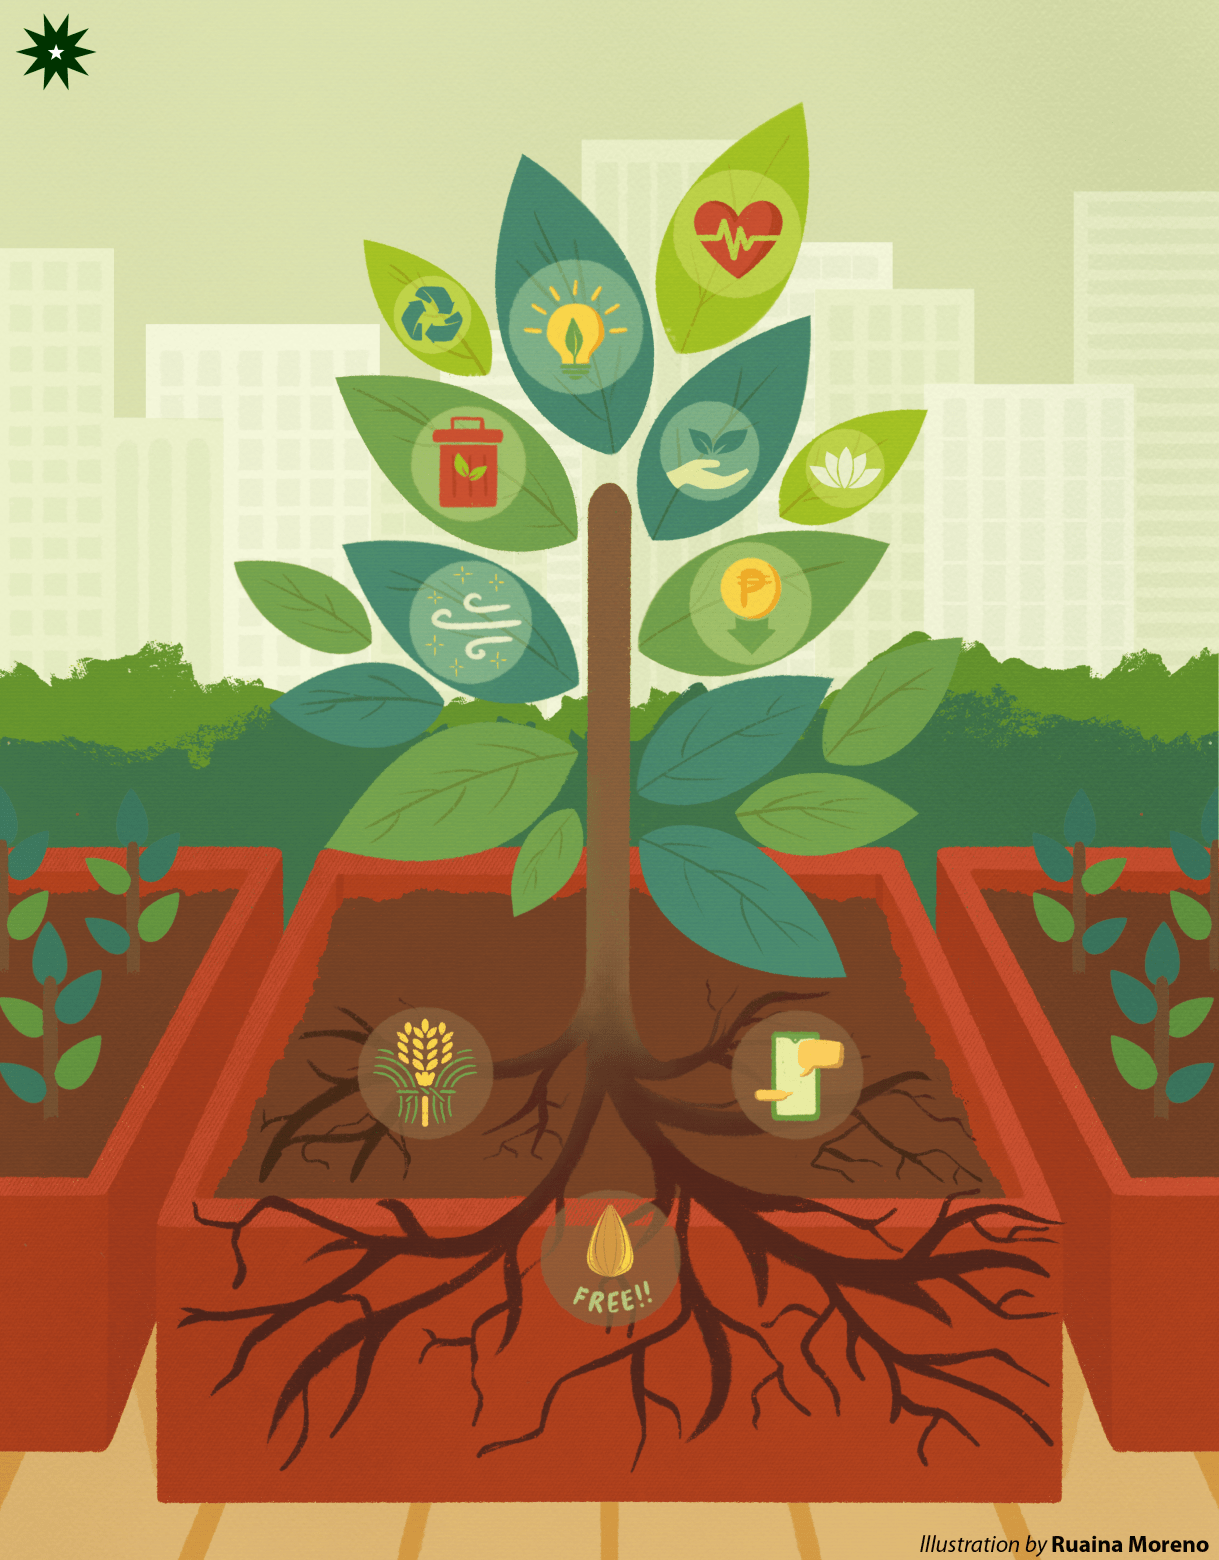 Heart and soil: Sowing the seeds of urban gardening